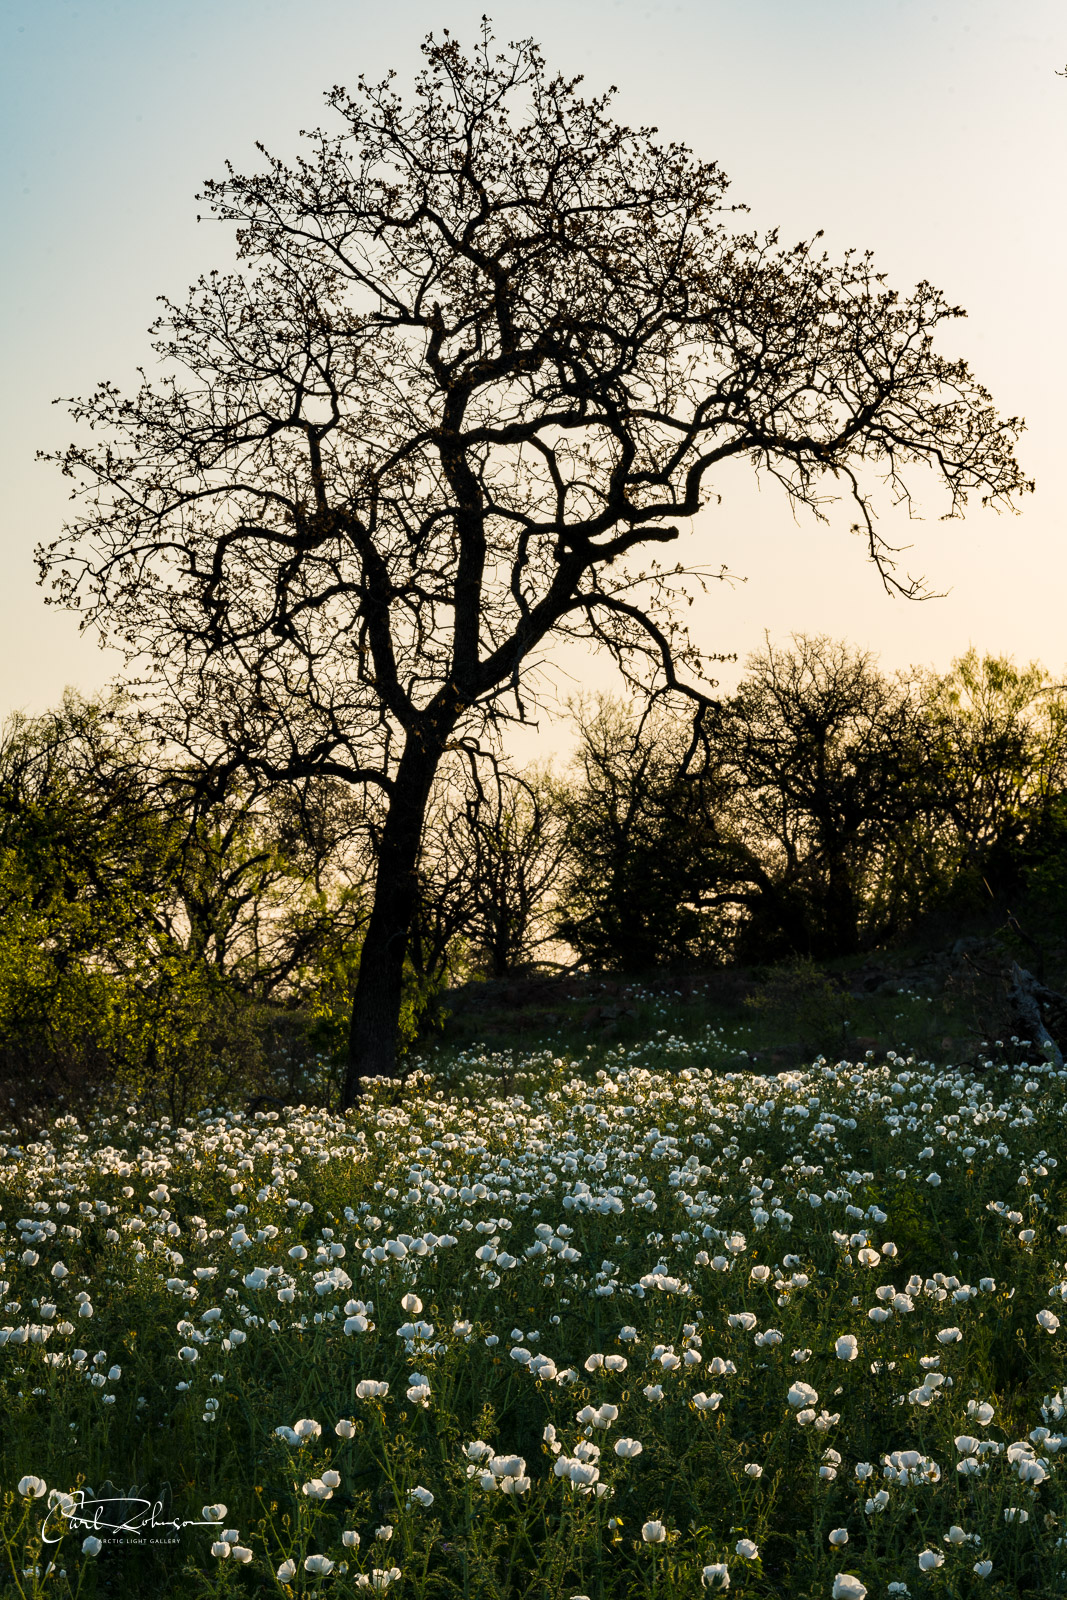 A lone tree towers over a field of white prickly poppy near the Willow City Loop road in the Texas Hill Country.